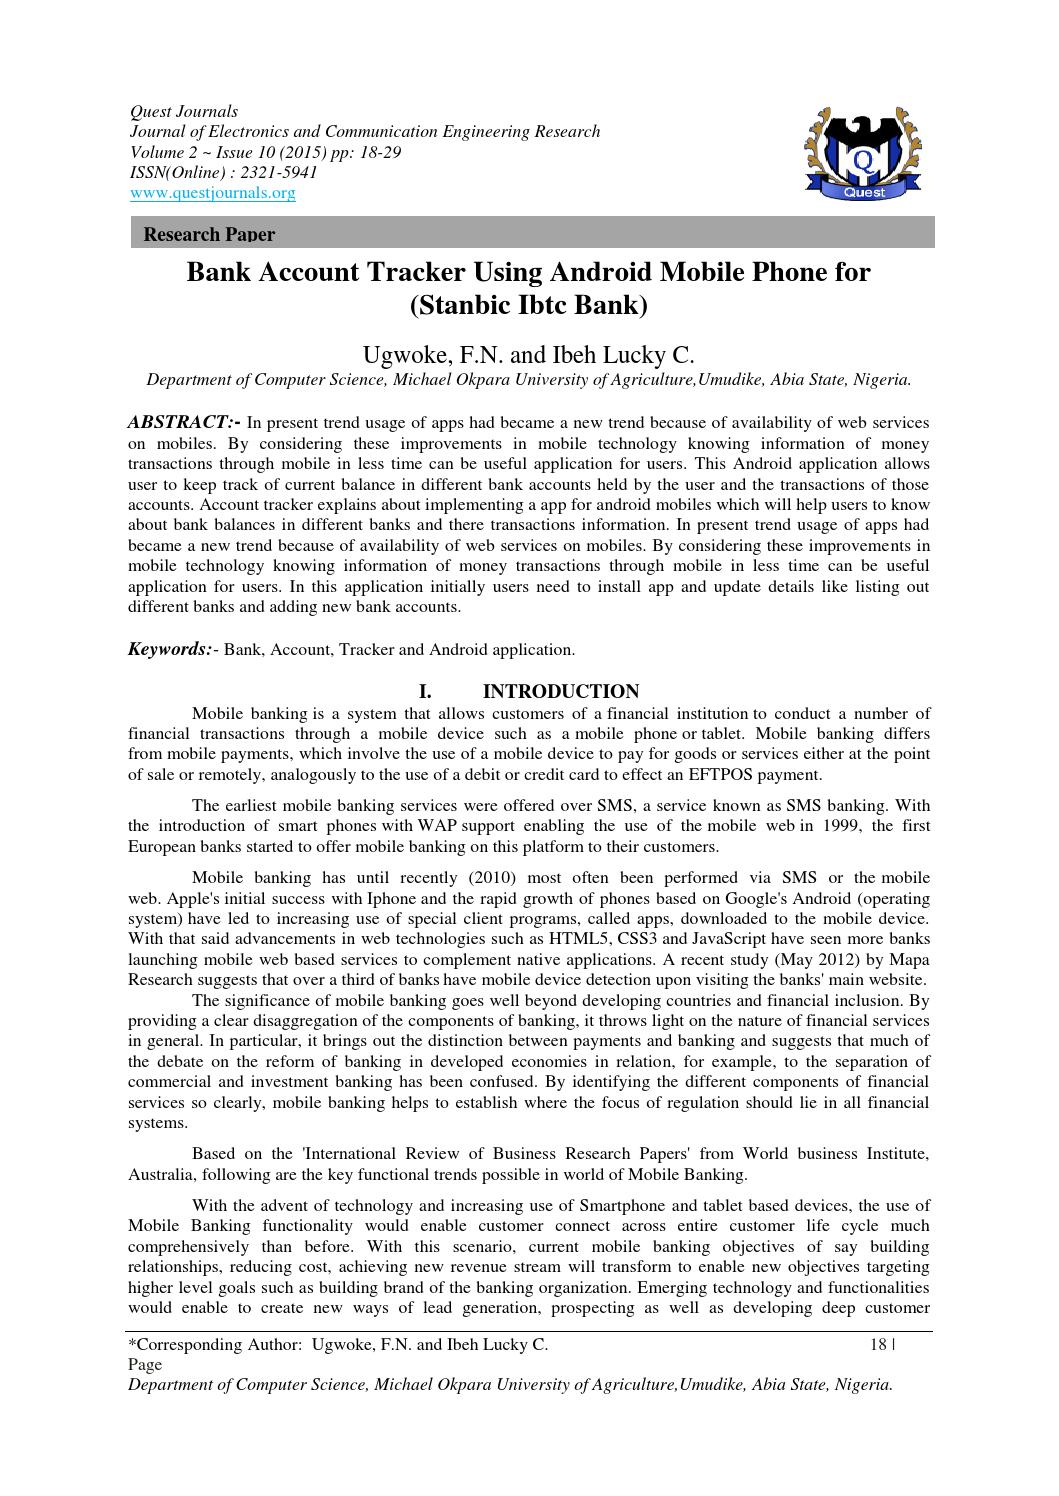 bank account tracker using android mobile phone for stanbic ibtc